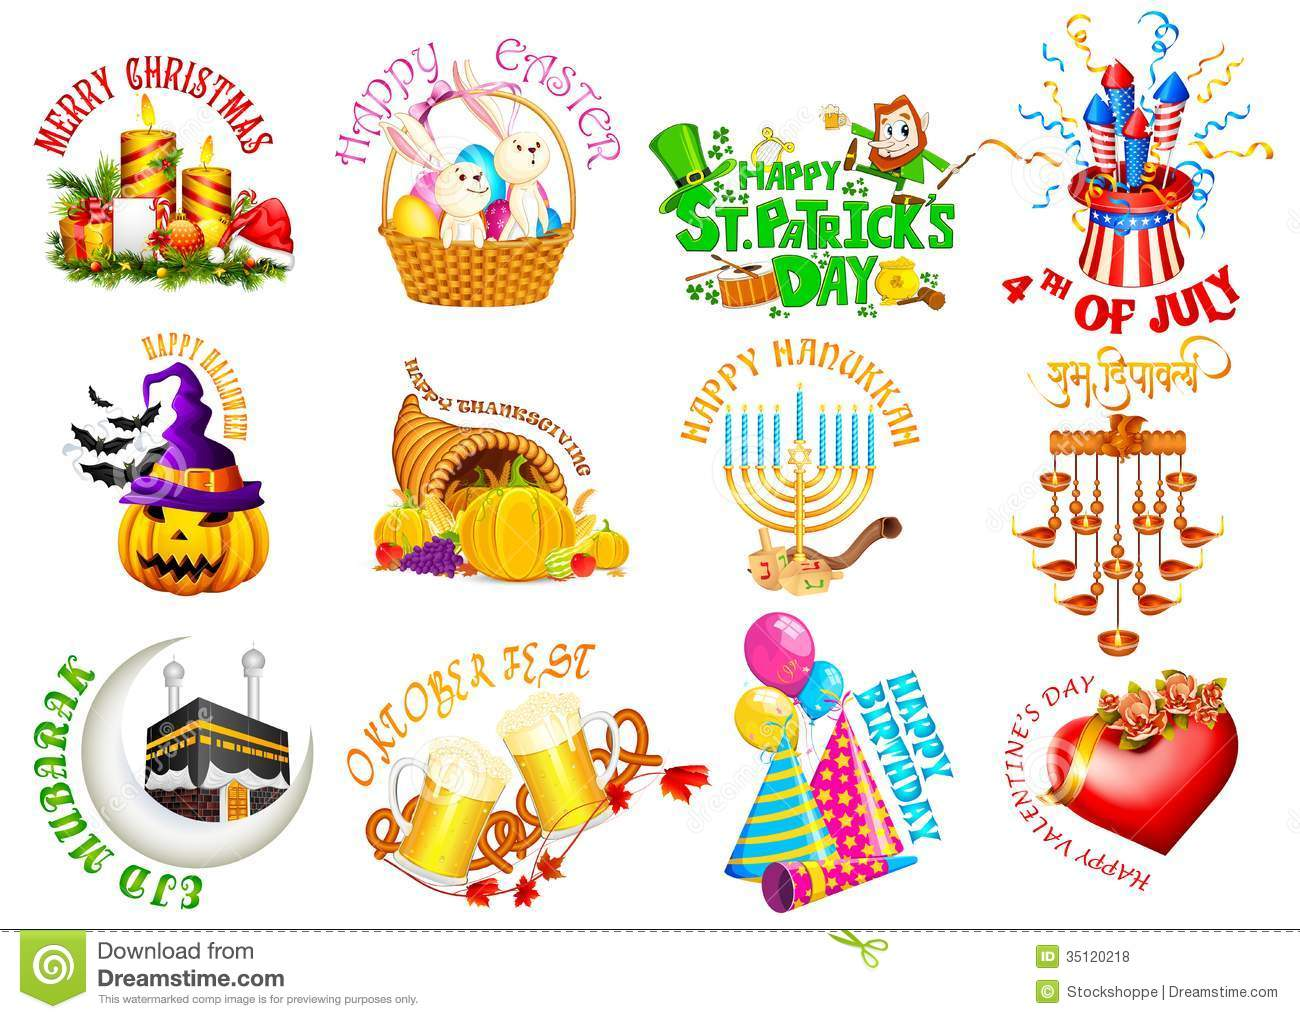 clipart bank holiday - photo #49